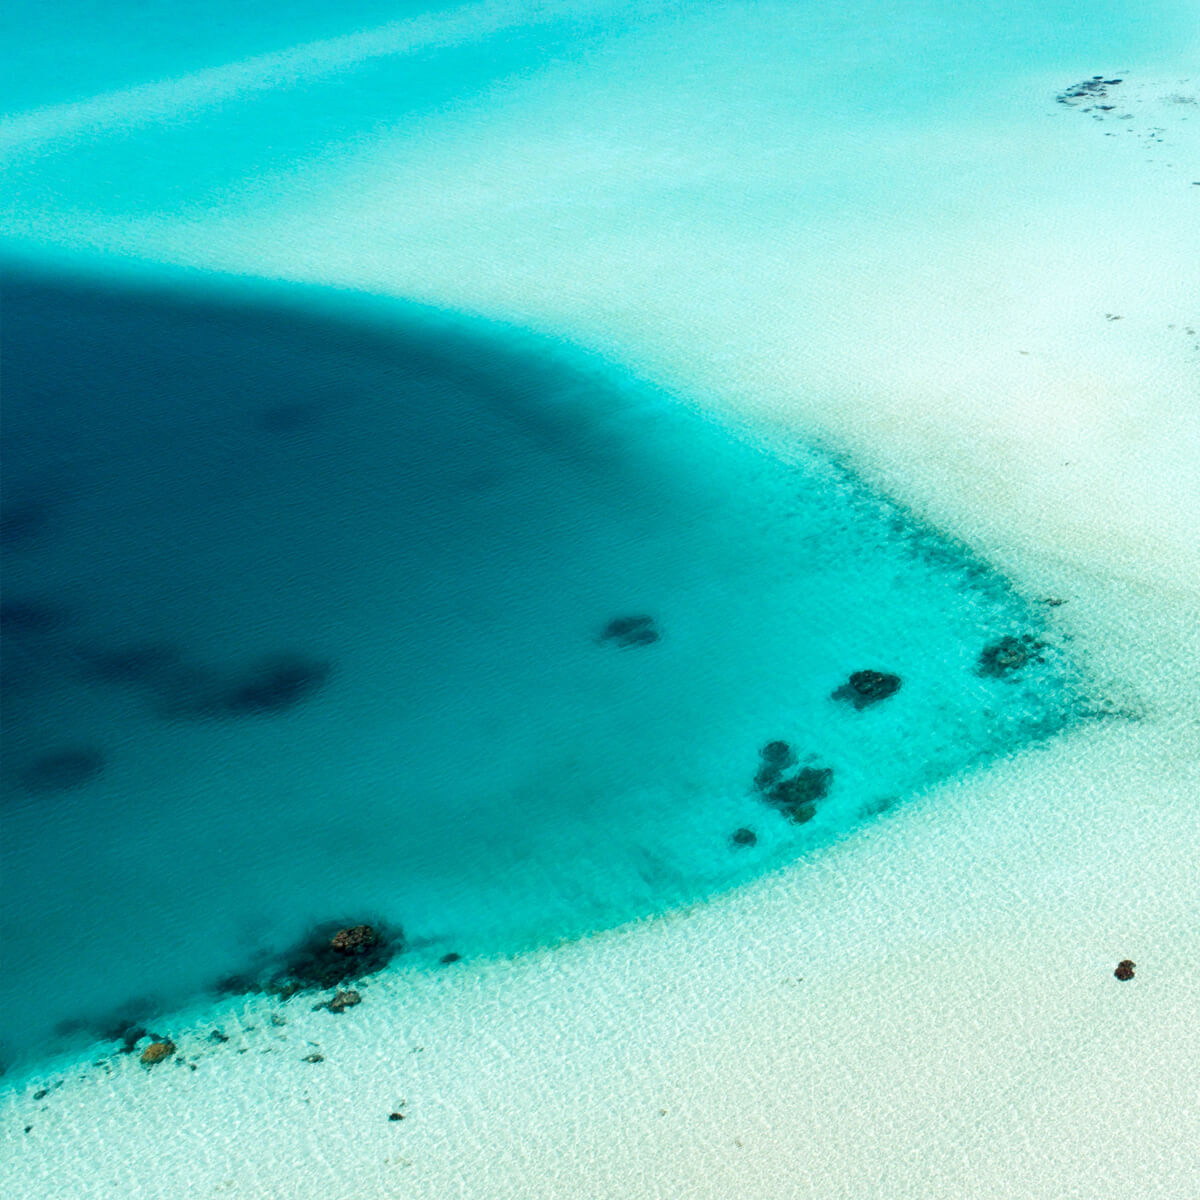 ultimate-yachts-maldives-ishan-seefromthesky-03